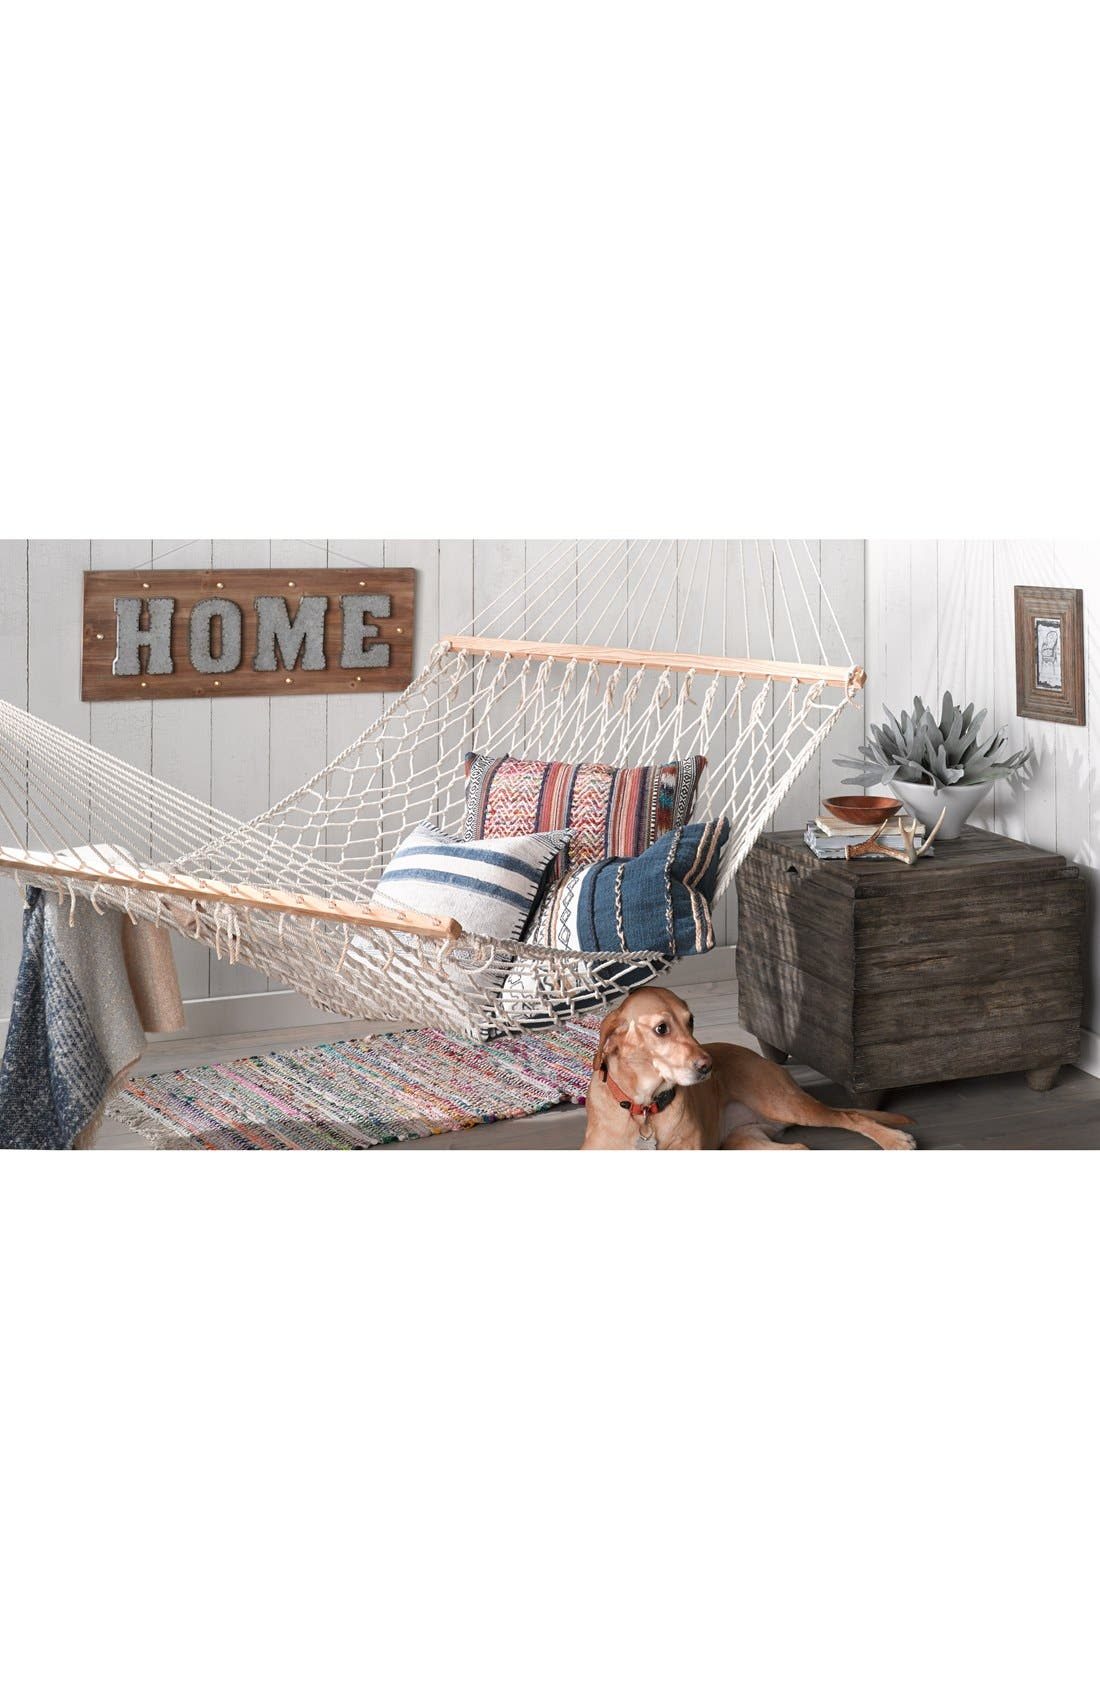 Alternate Image 2  - Crystal Art Gallery 'Home' Marquee Light Wooden Sign